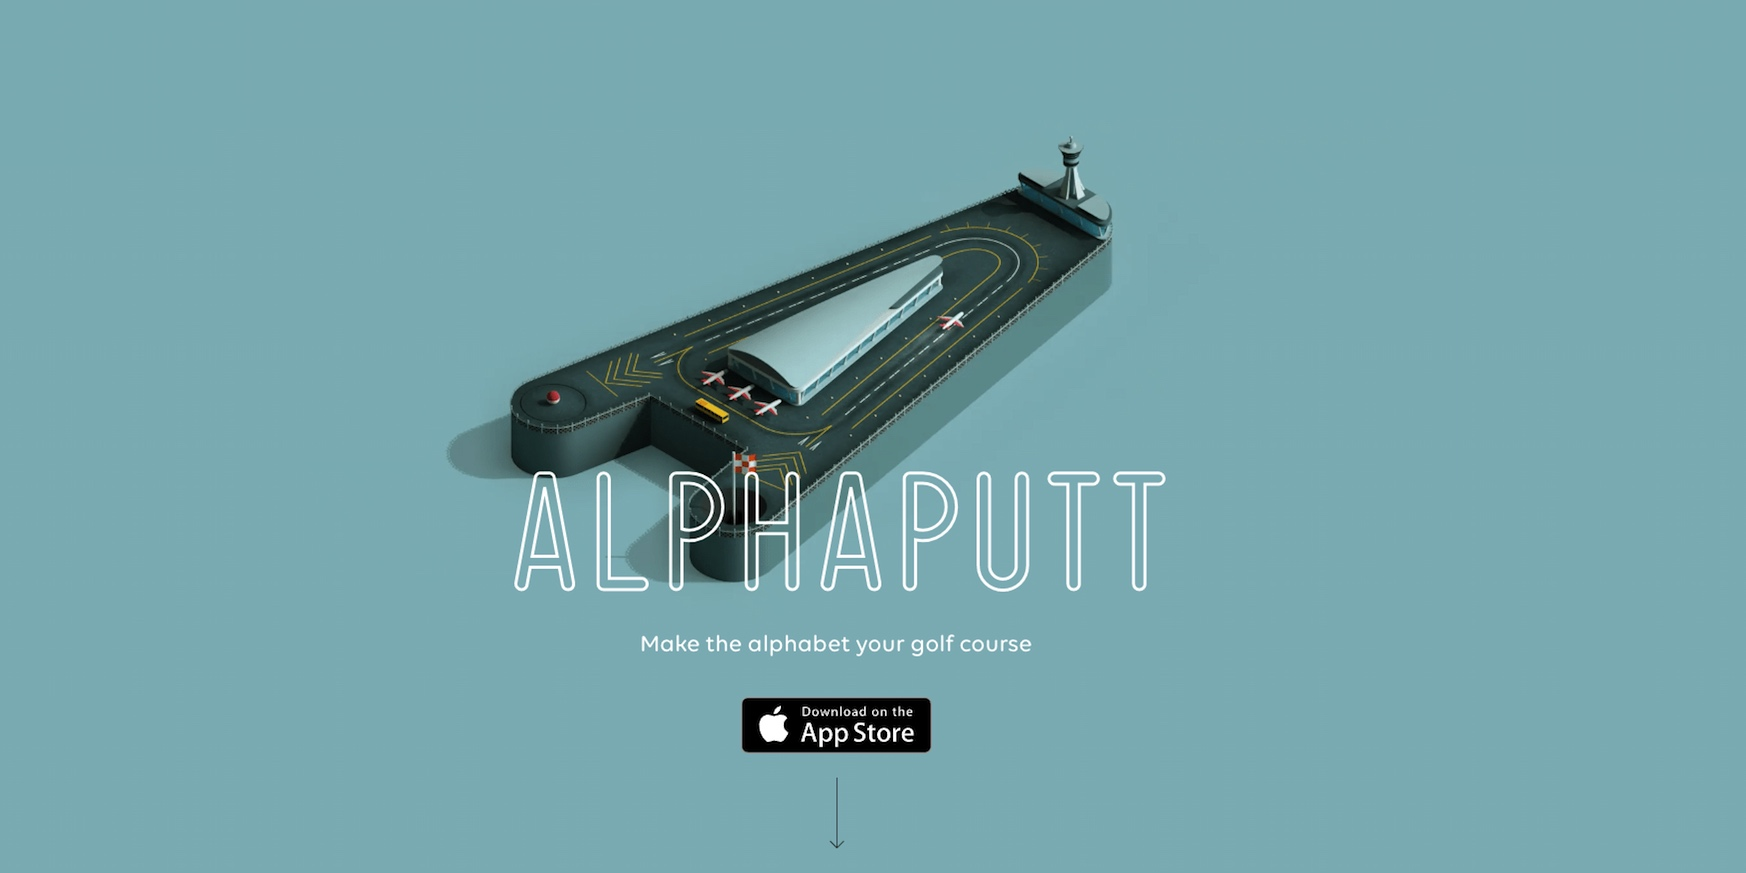 Download Alphaputt for FREE for the very first time on iOS - 9to5Toys